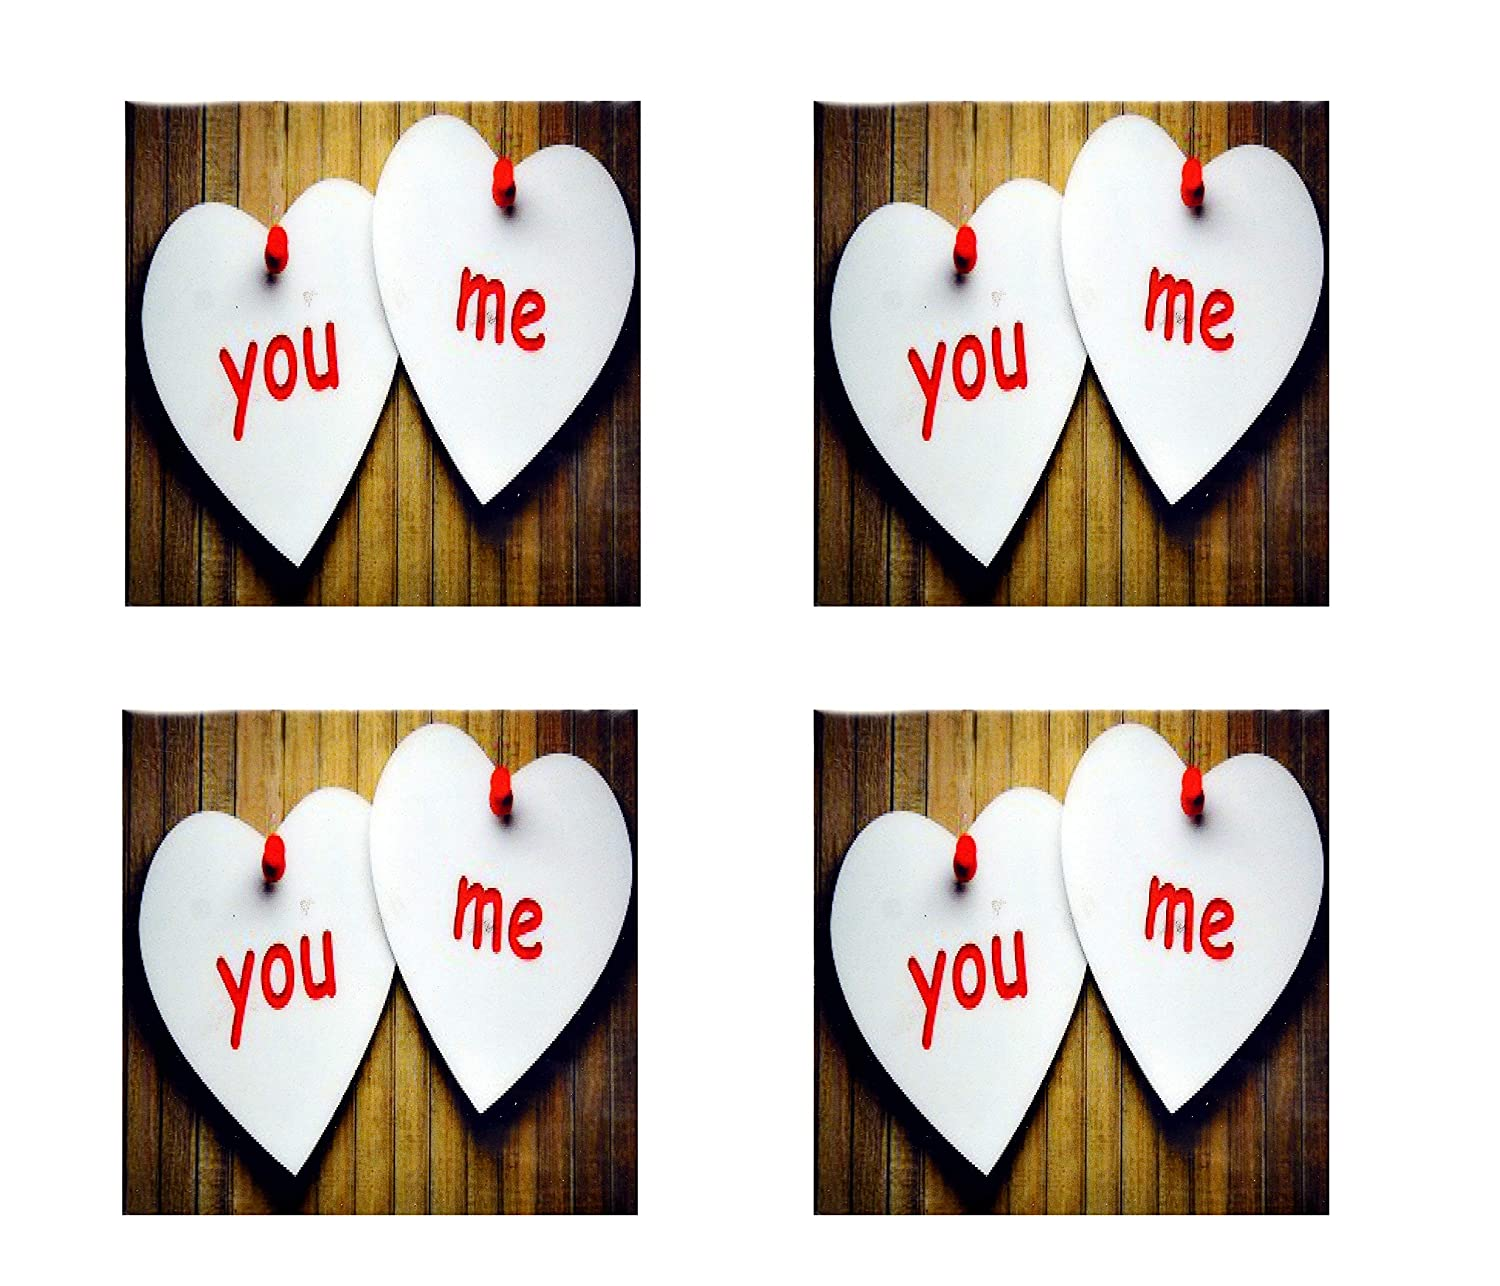 Bar//Dining Accessories Beverage Love Coasters Set of Round Personalized Drink Coasters Multi-Colored Printed Wooden Round, Pack of 4